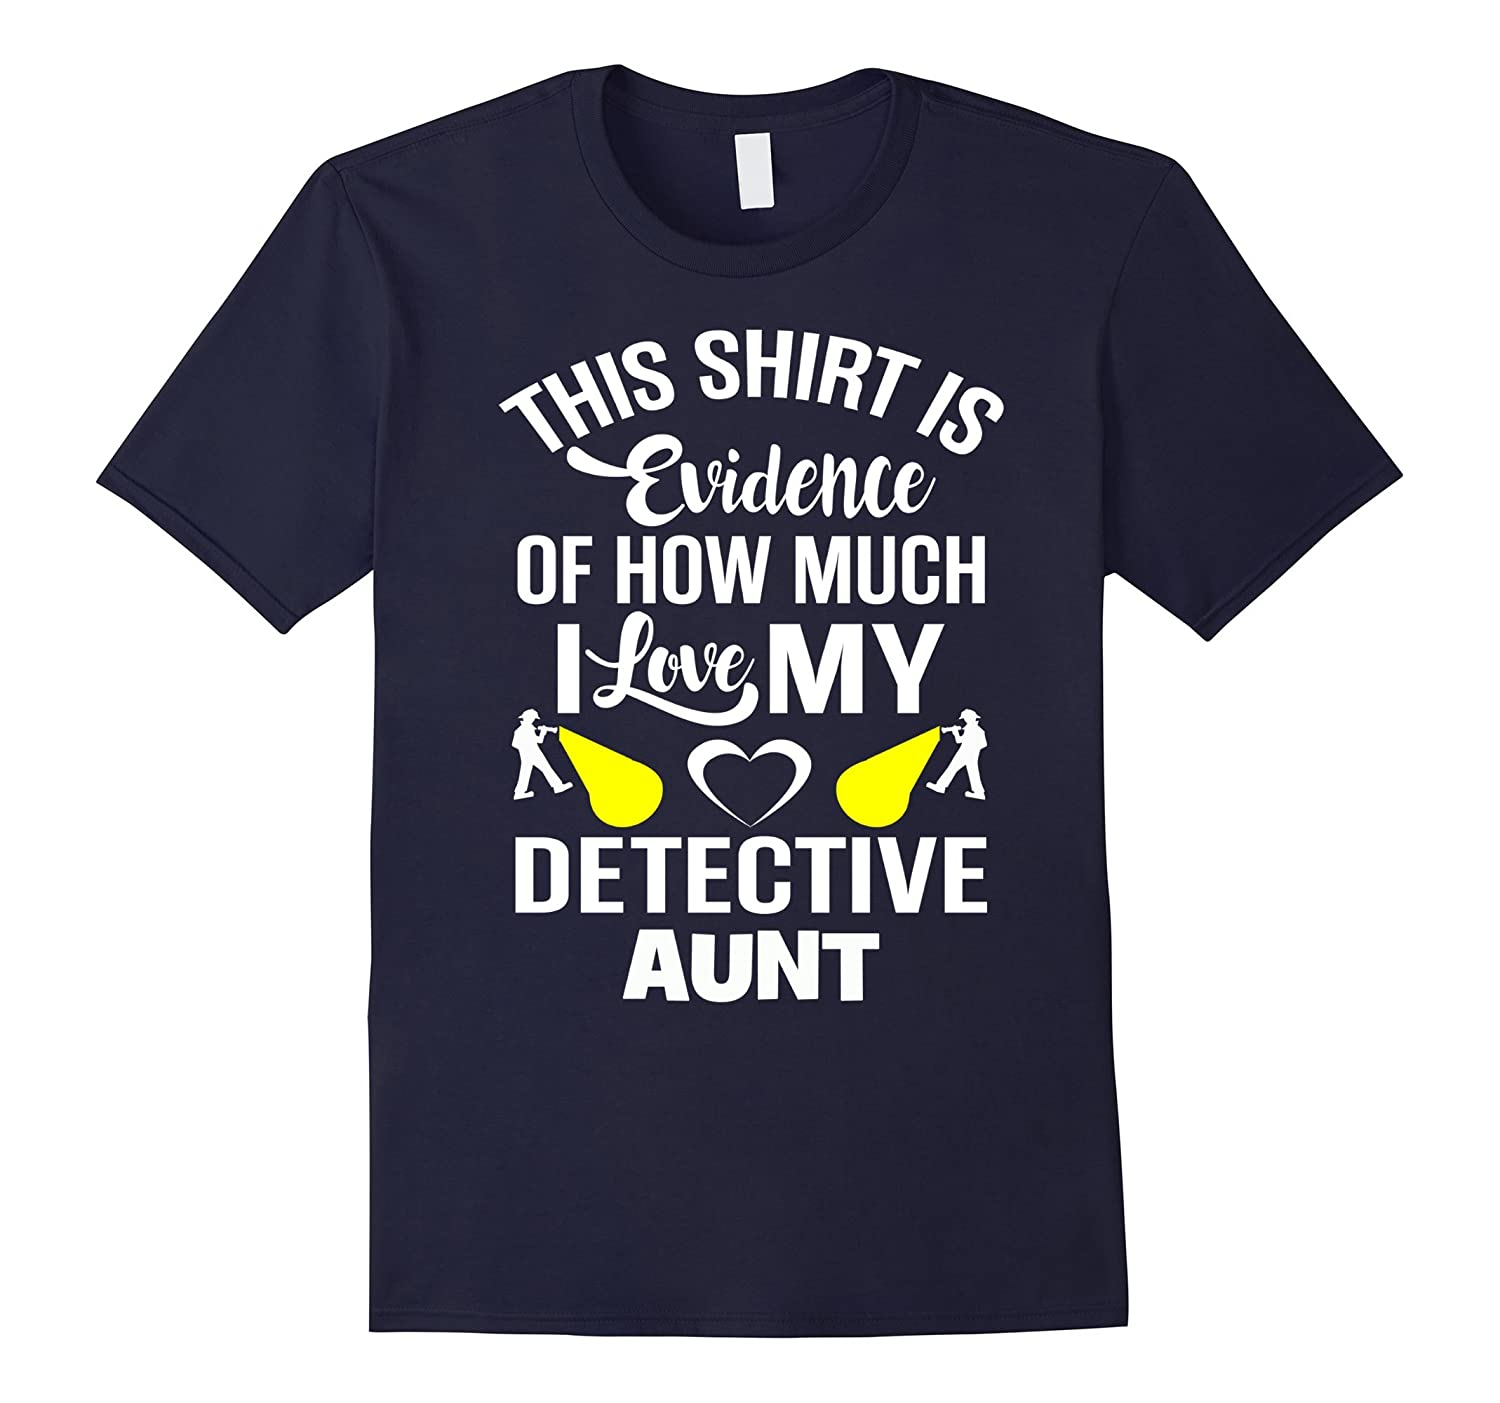 Police Detective Aunt - Funny Love Evidence T-Shirt-CD